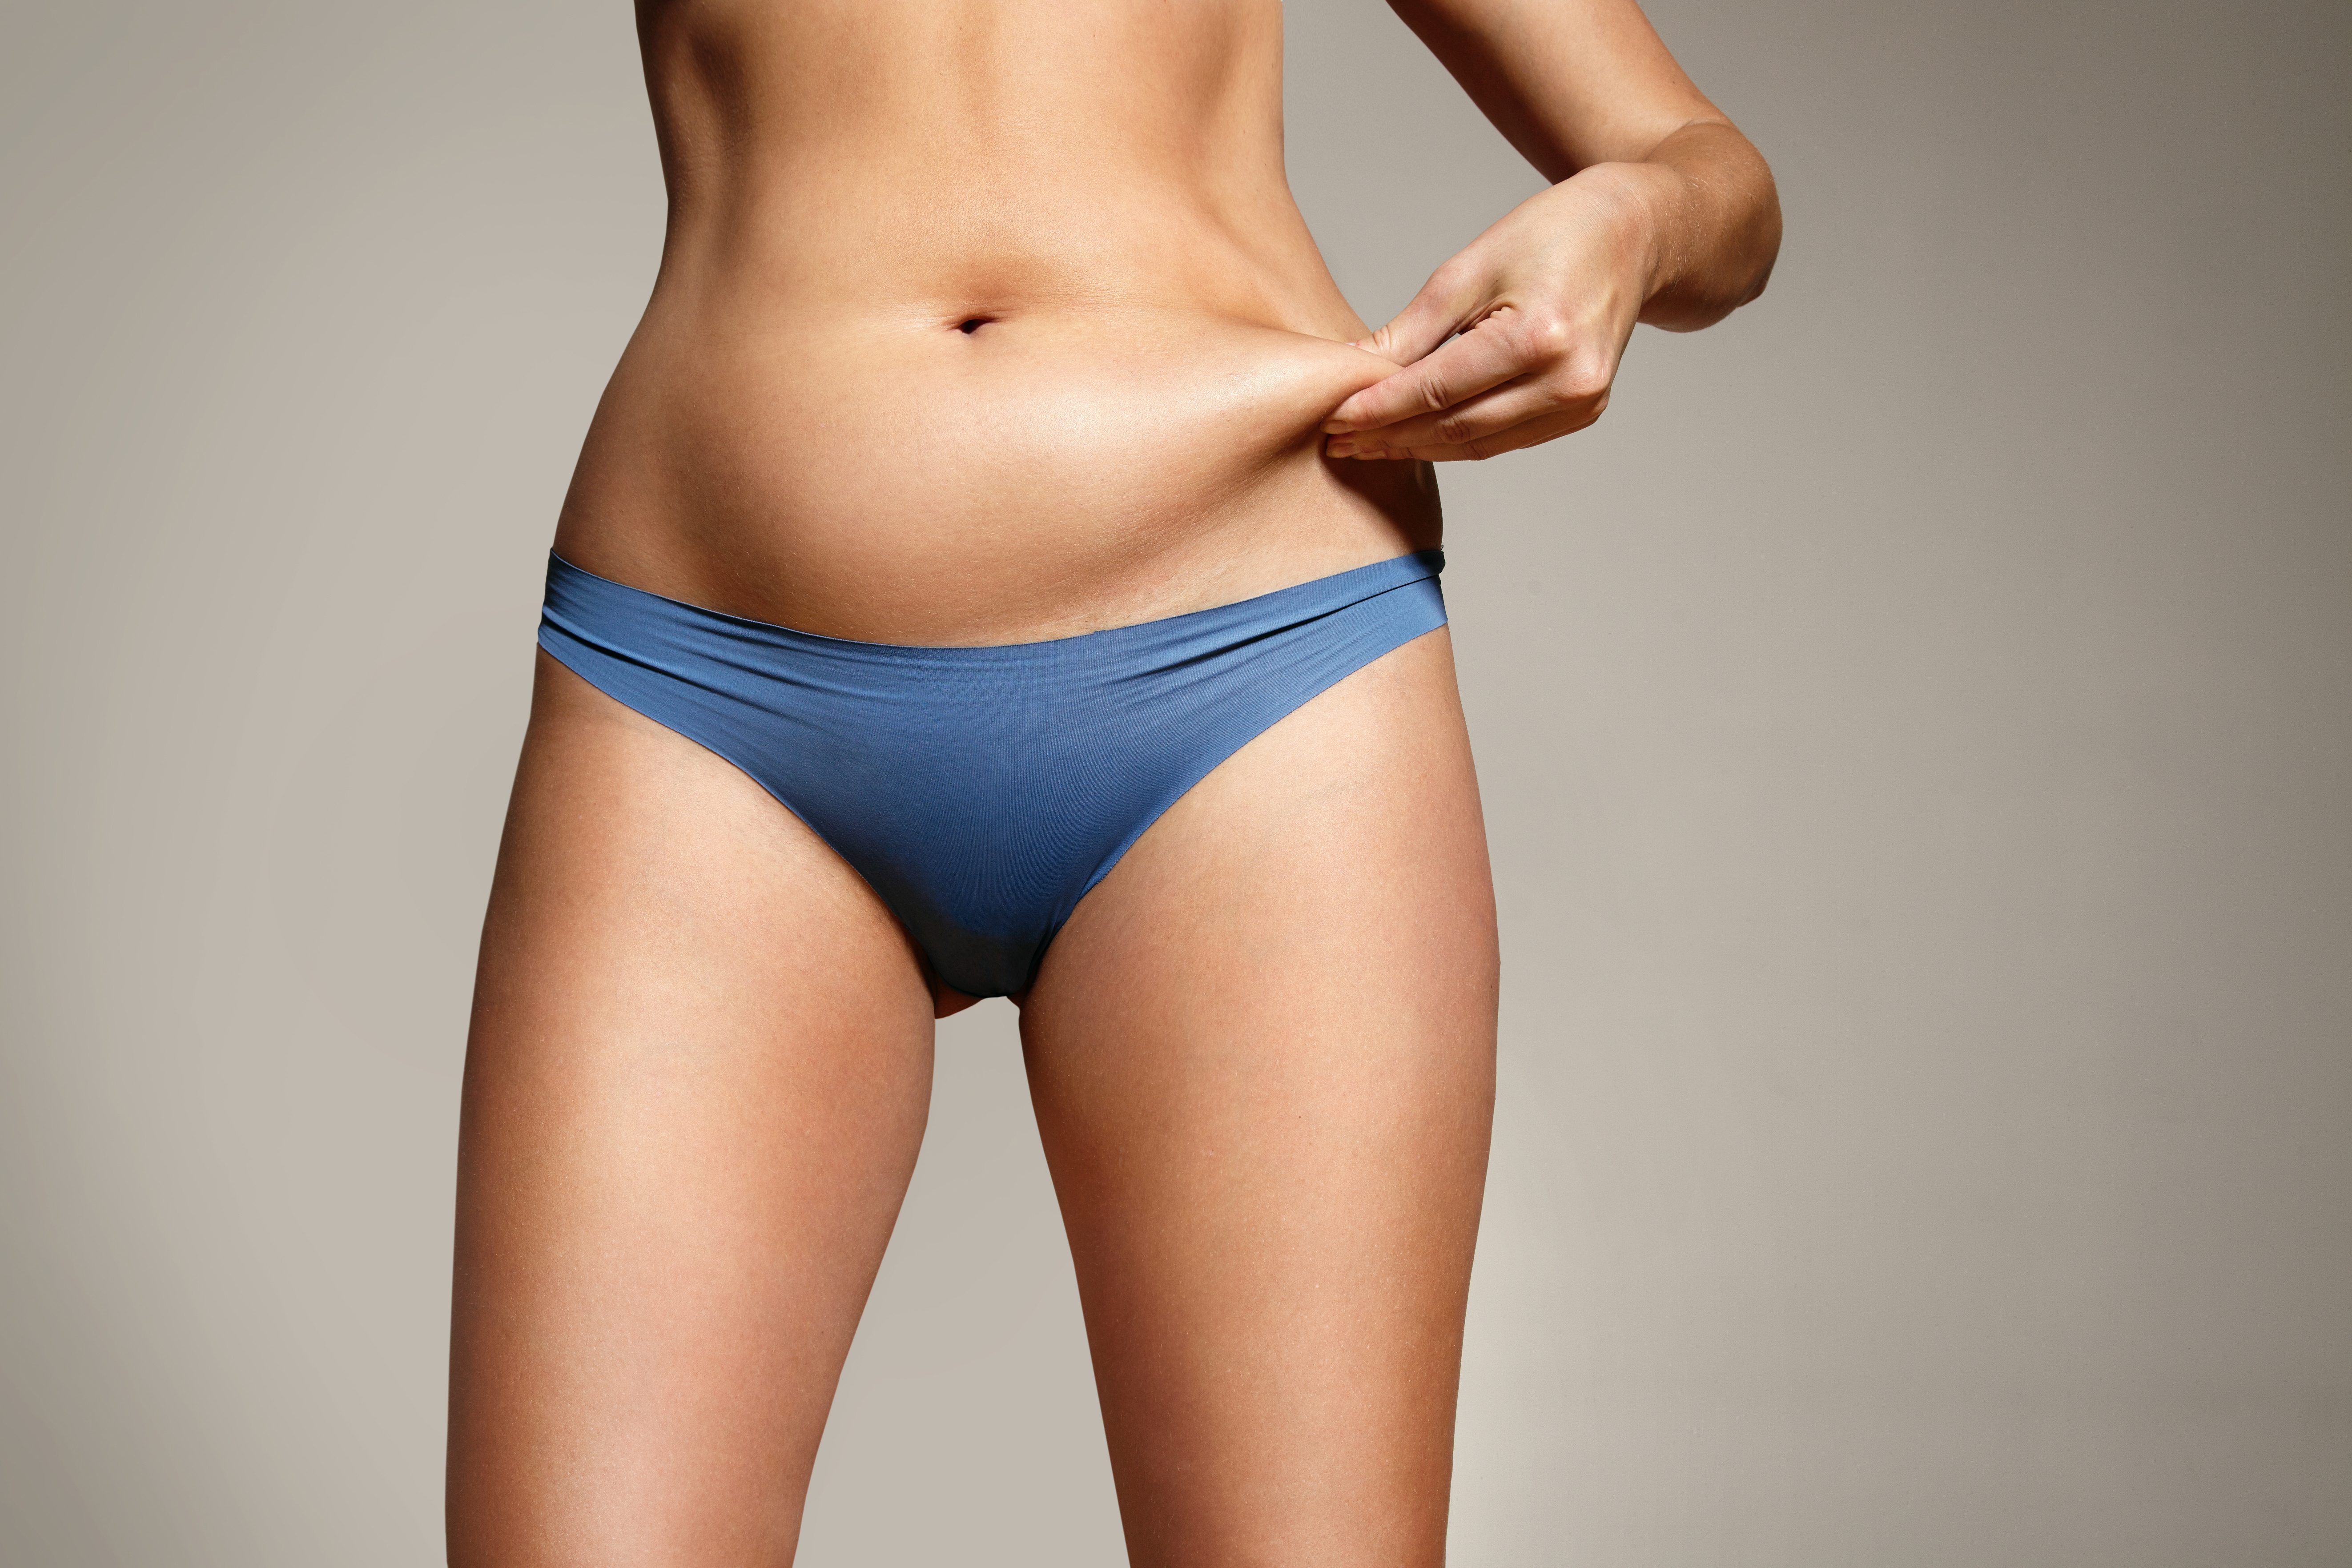 The Tummy Tuck's 4 Surprising Medical Benefits